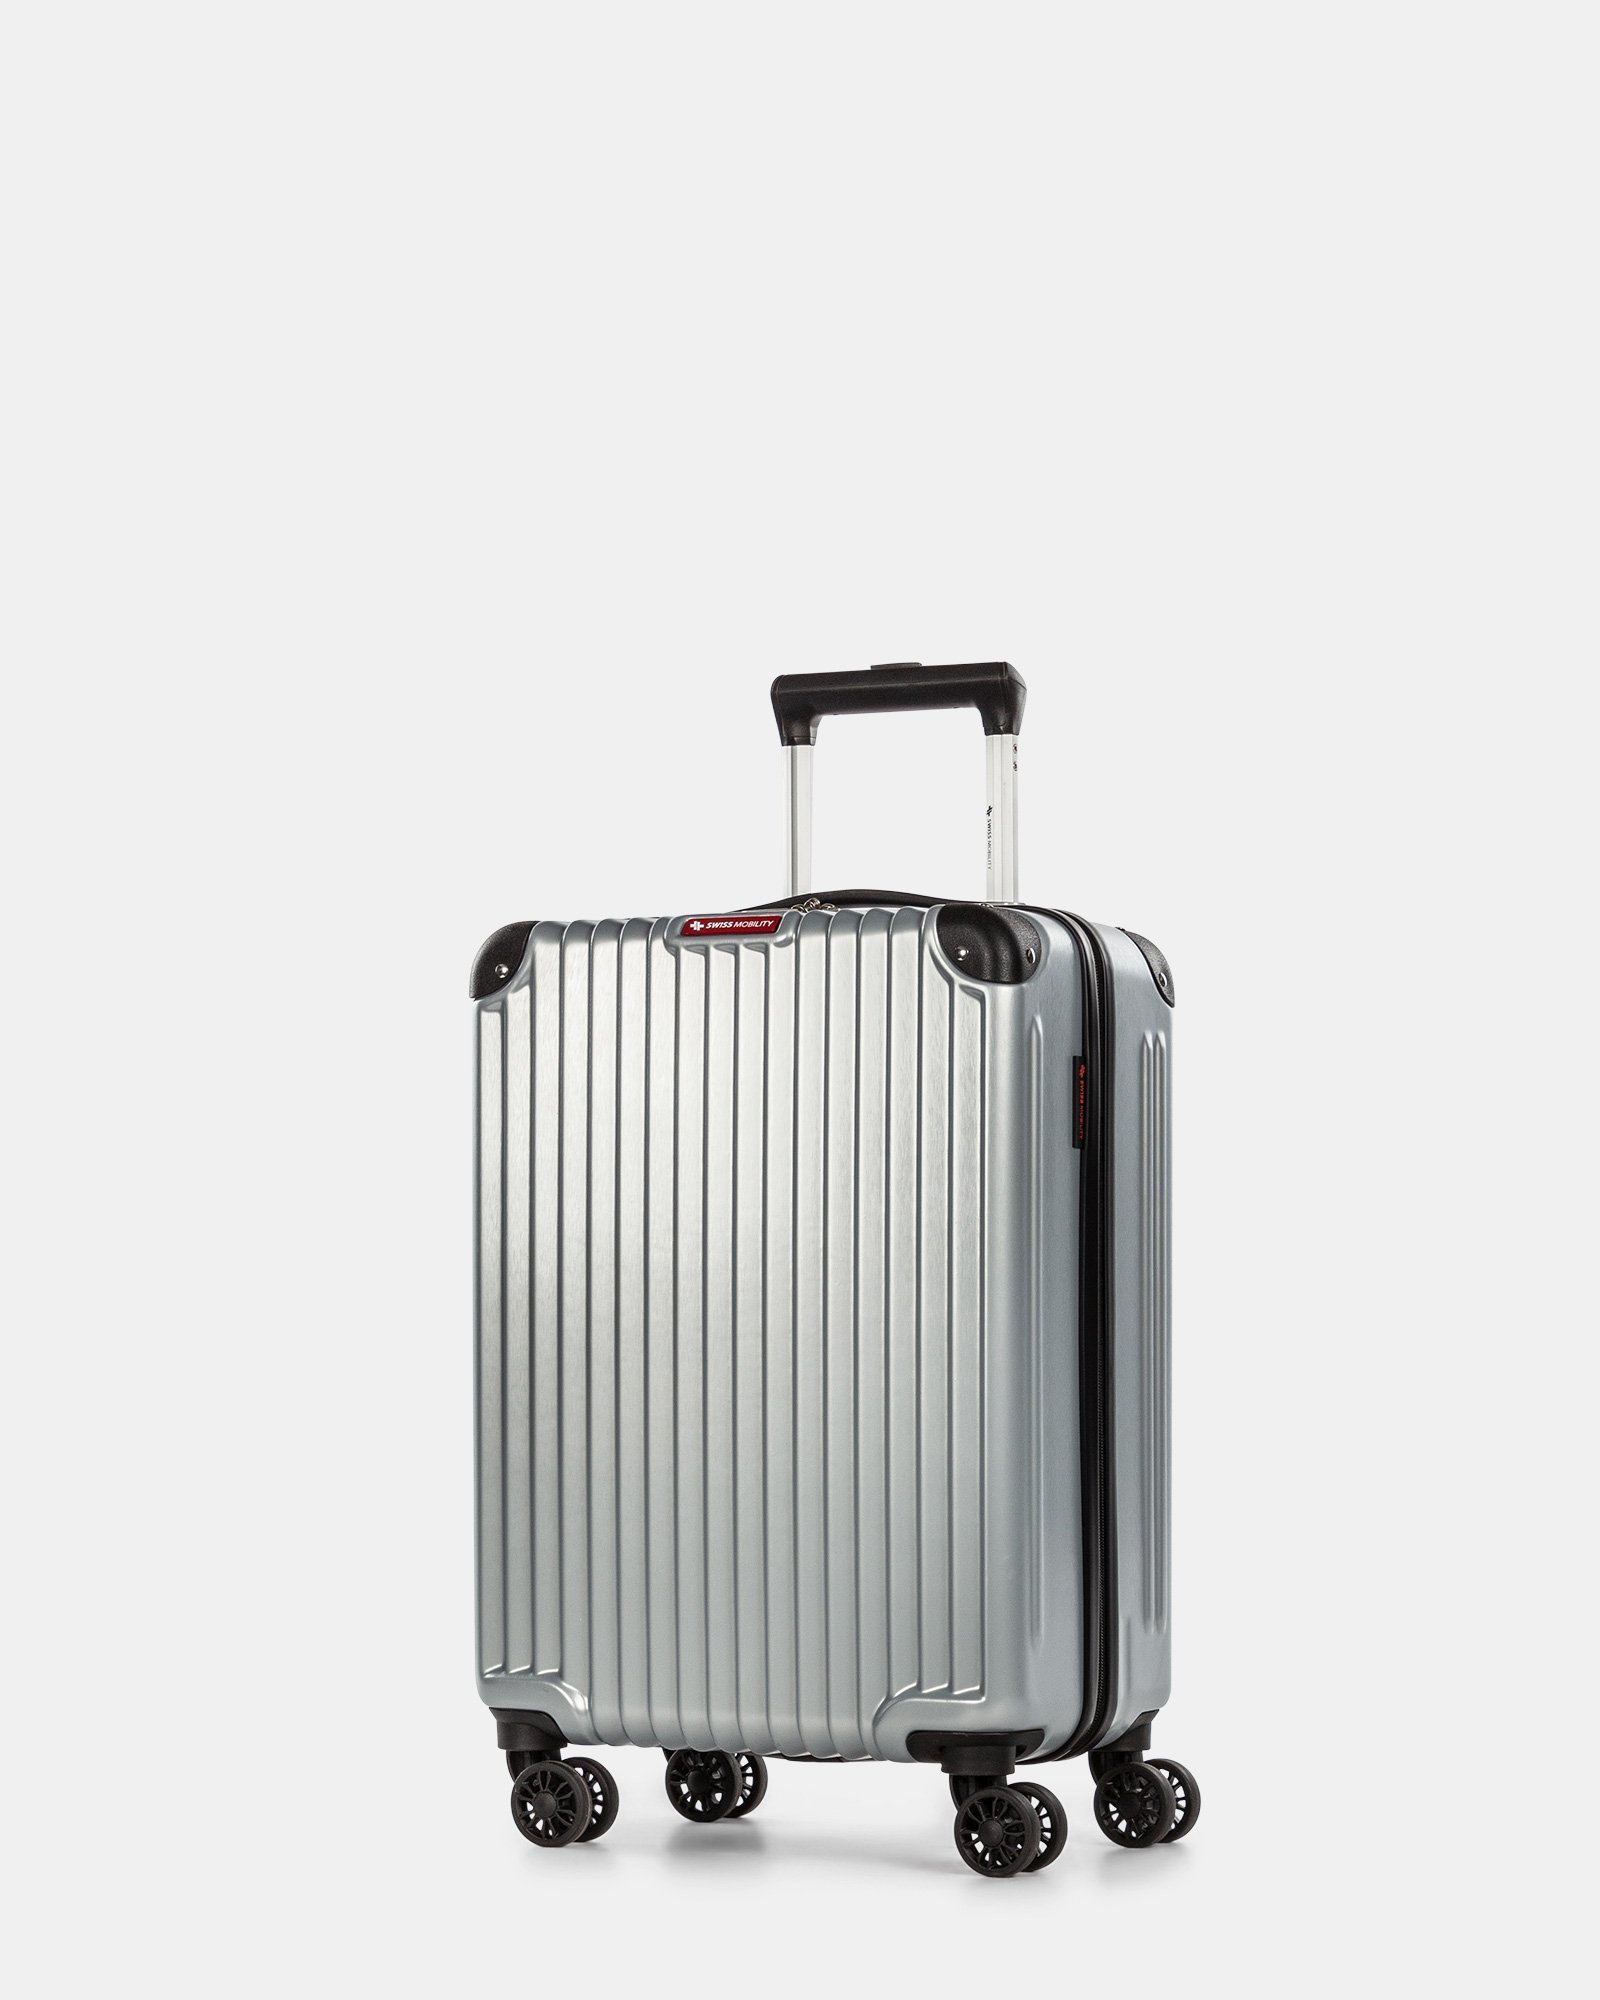 Ember - Lightweight Hardside Carry-on with double spinner wheels (8 wheels) - Silver - Swiss Mobility - Zoom